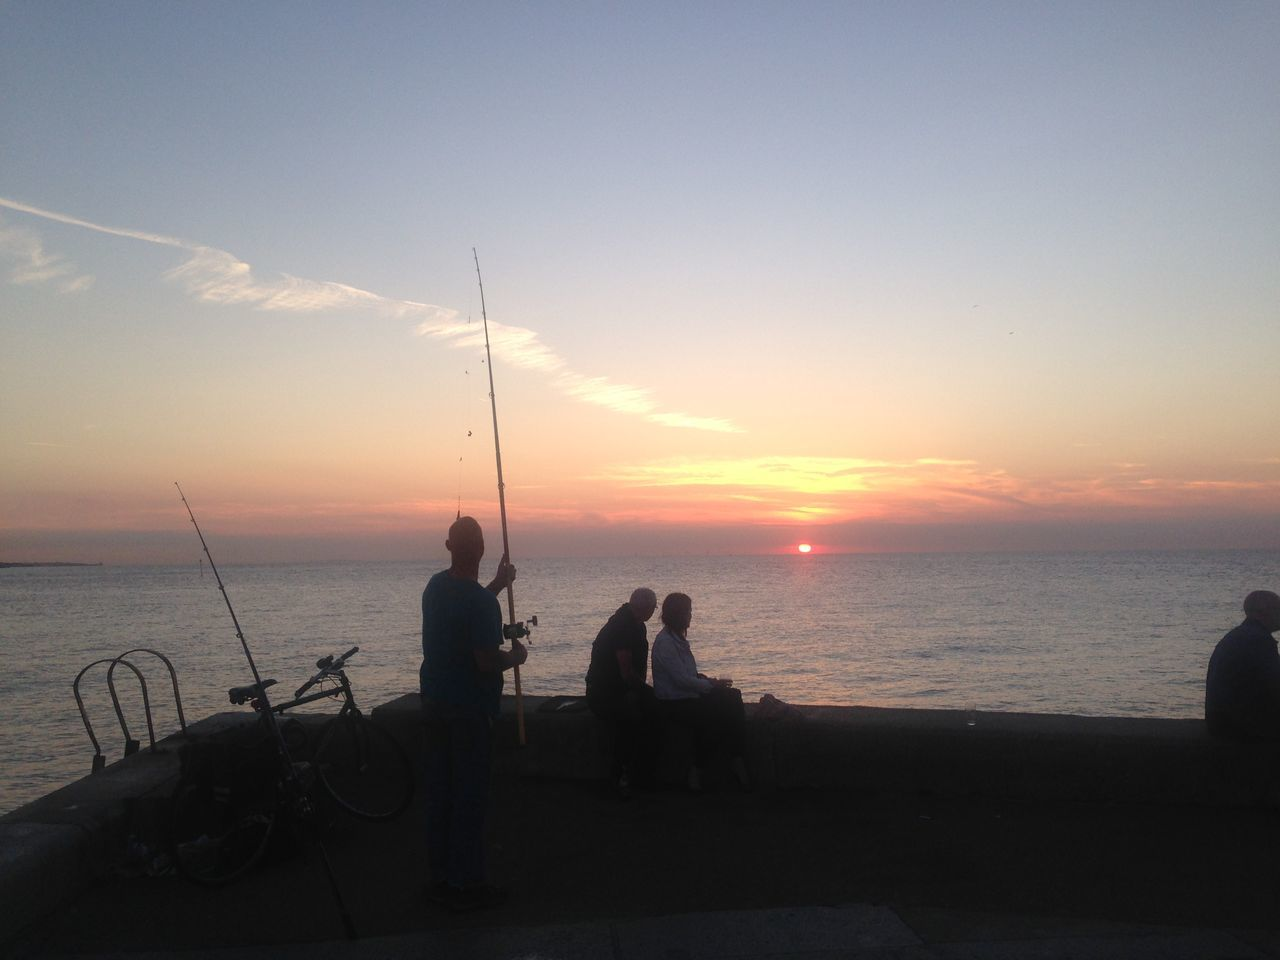 sea, sunset, silhouette, horizon over water, water, scenics, tranquil scene, nature, beauty in nature, sky, tranquility, idyllic, fishing pole, real people, men, leisure activity, fishing, weekend activities, outdoors, standing, beach, togetherness, sitting, people